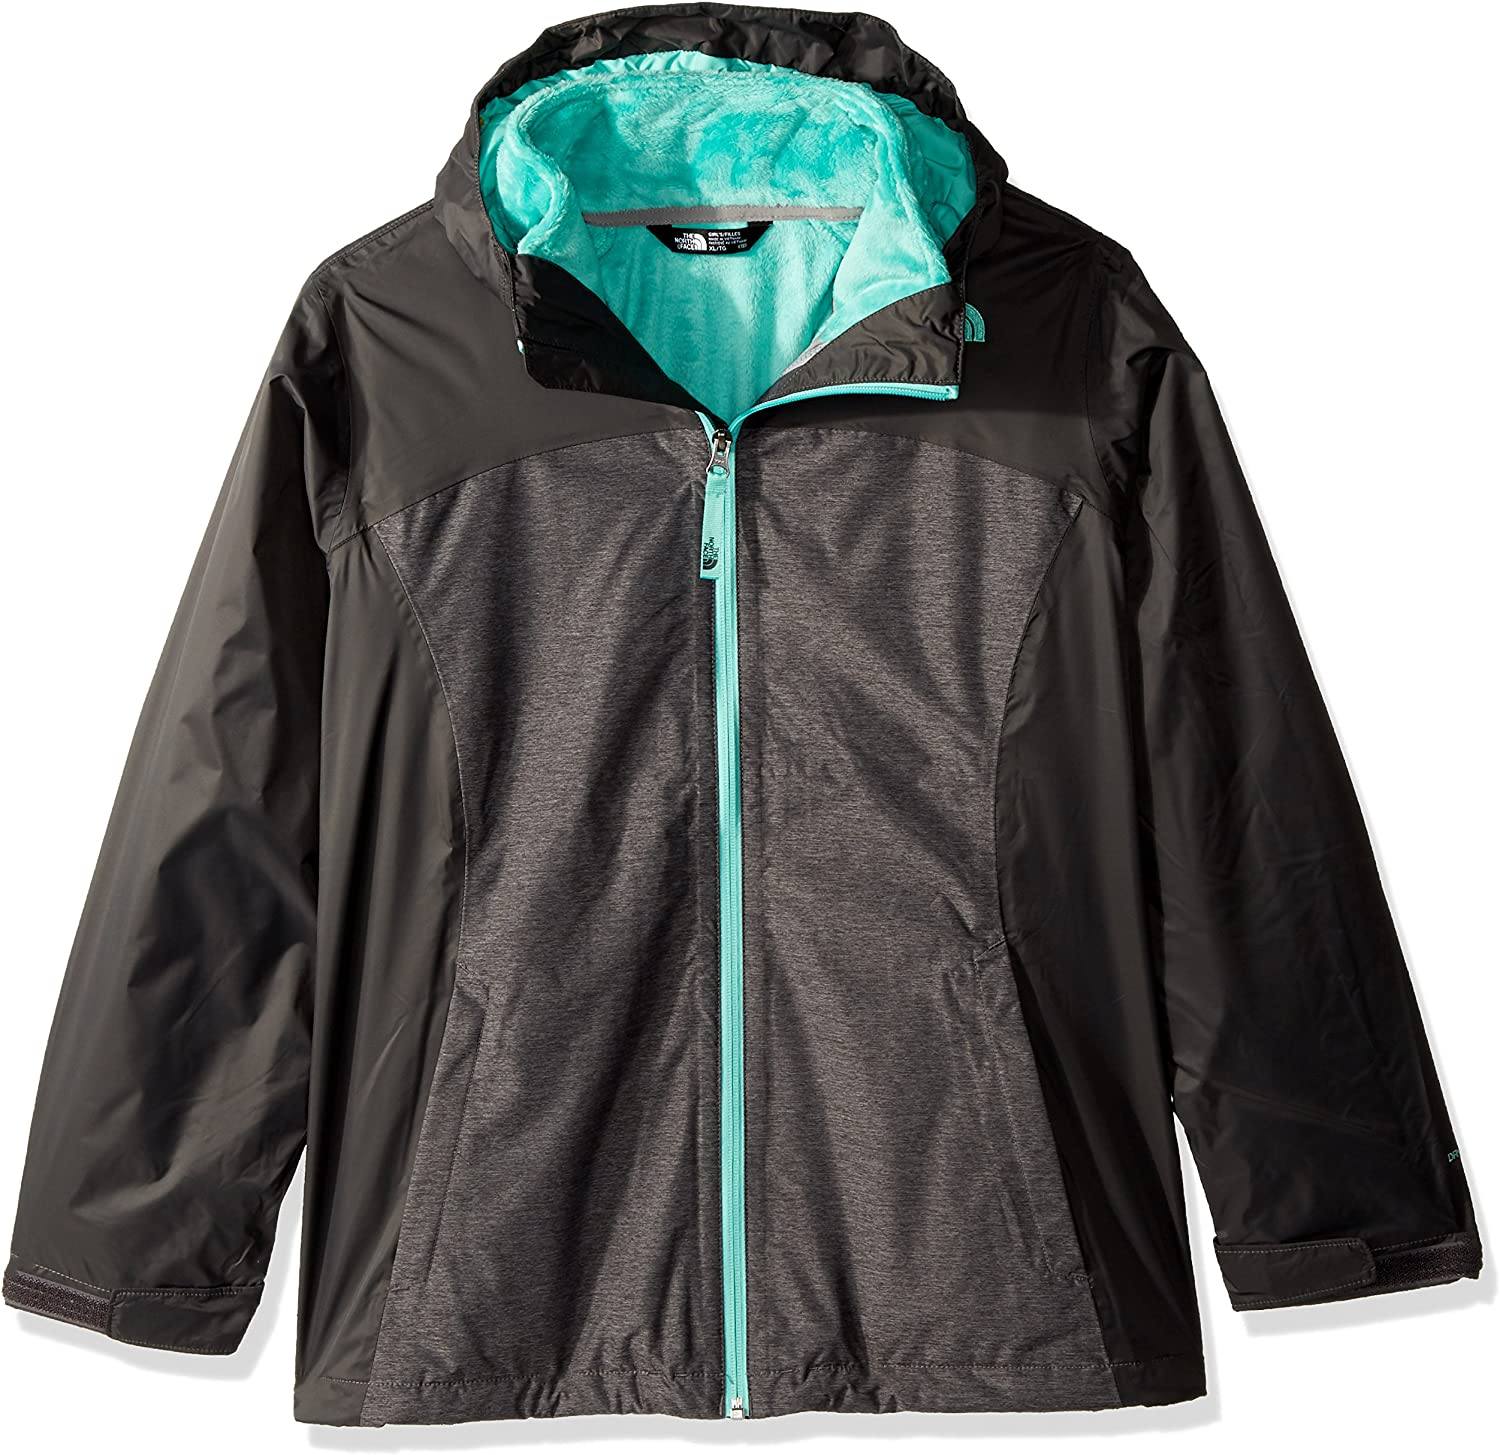 The North half Face Girl's Osolita Triclimate Jacket Max 67% OFF